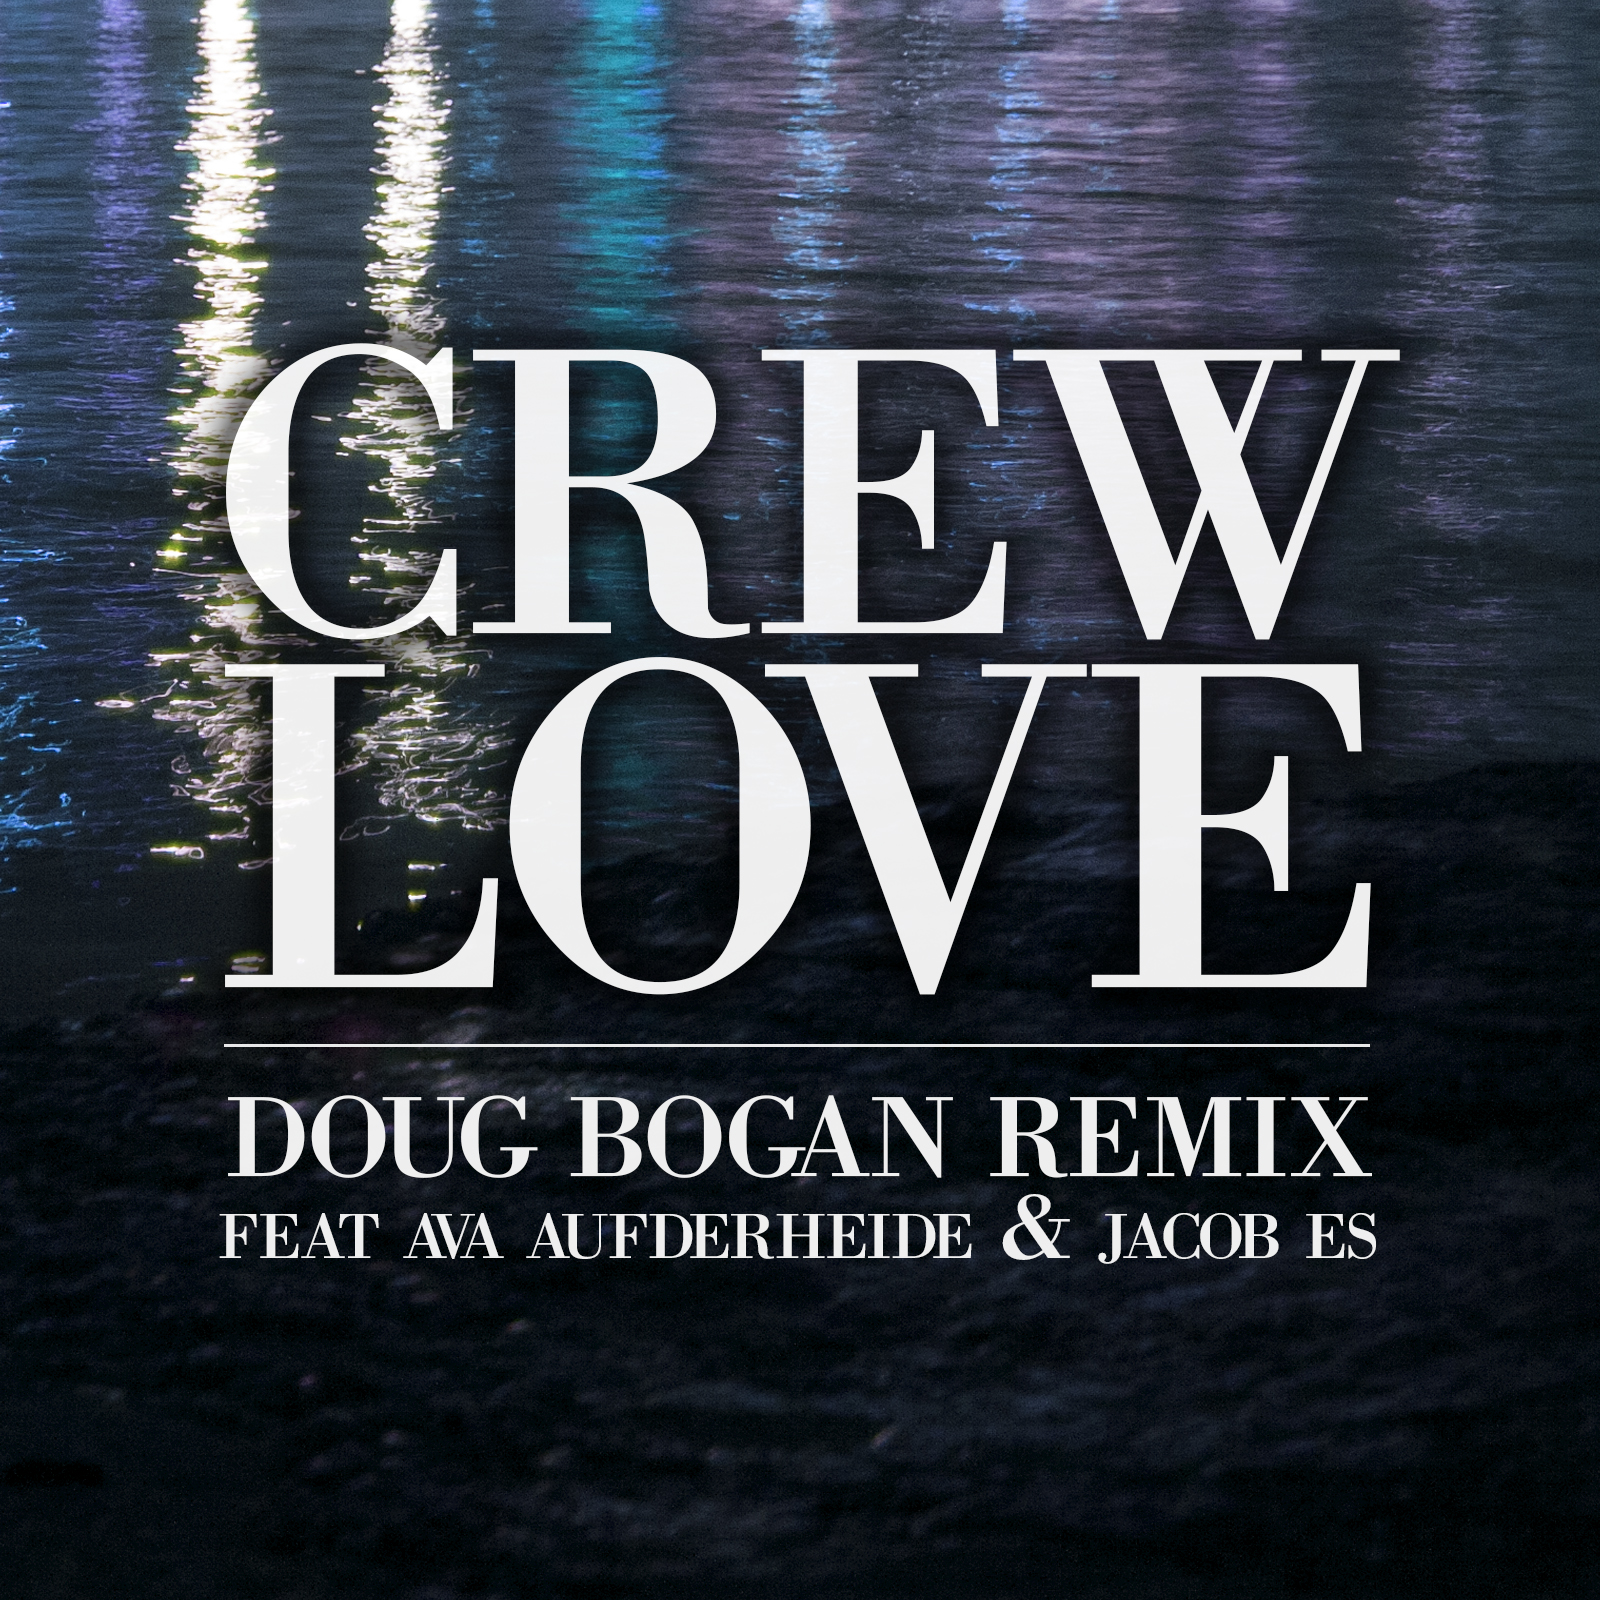 Crew Love Music, video swag for lovers